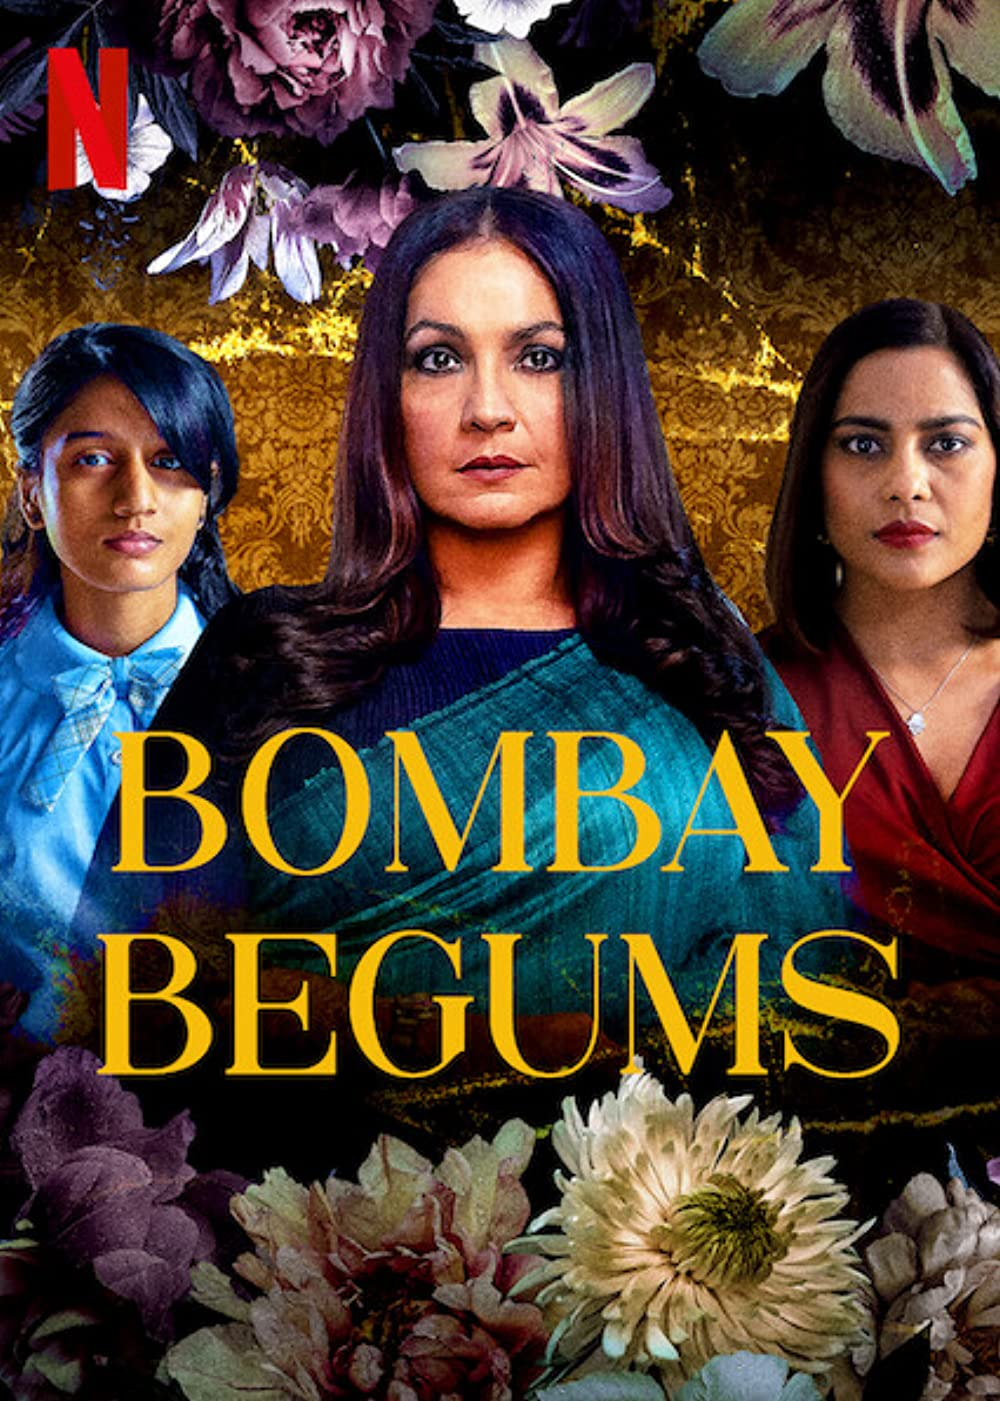 Bombay Begums 2021 S01 Hindi Netflix Original Complete Web Series 905MB HDRip Download